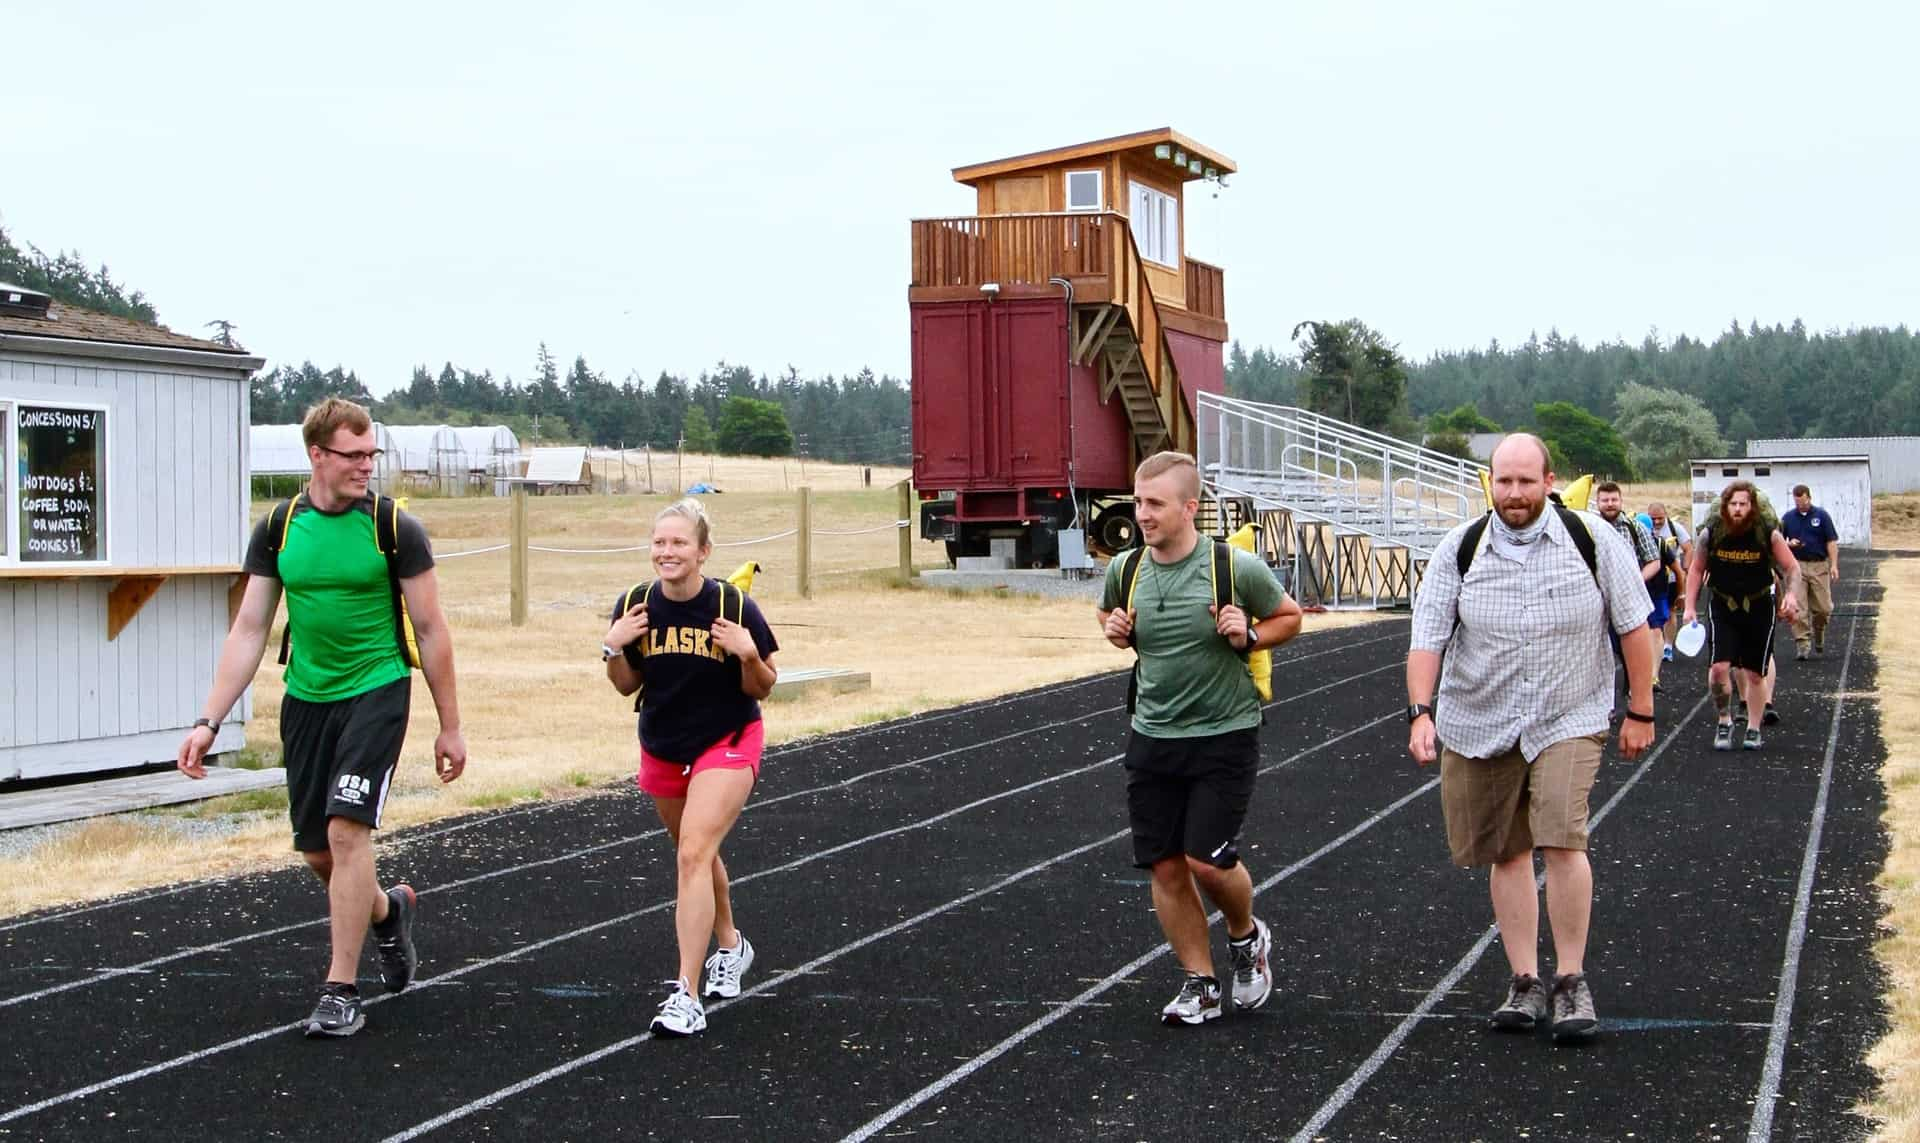 Pack test participants walking around a track, carrying backpacks